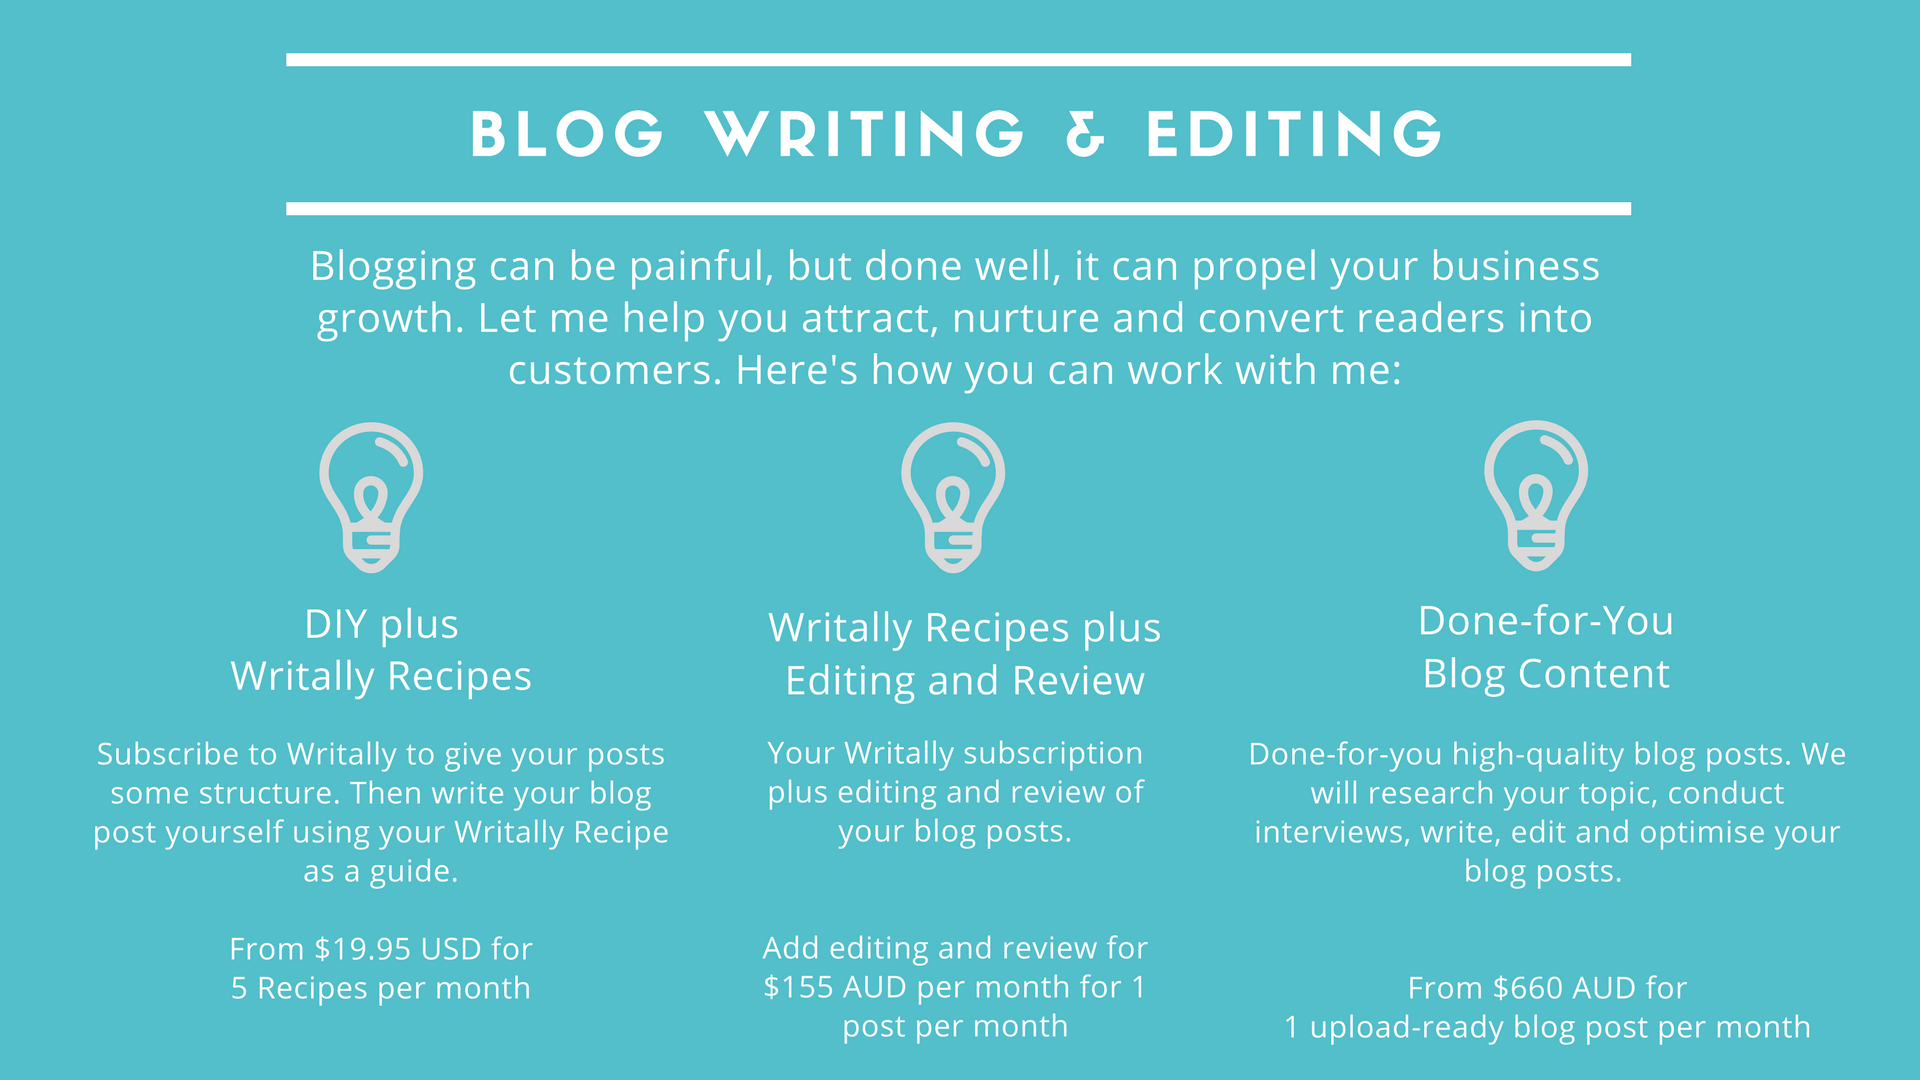 exceptional blog writing and editing